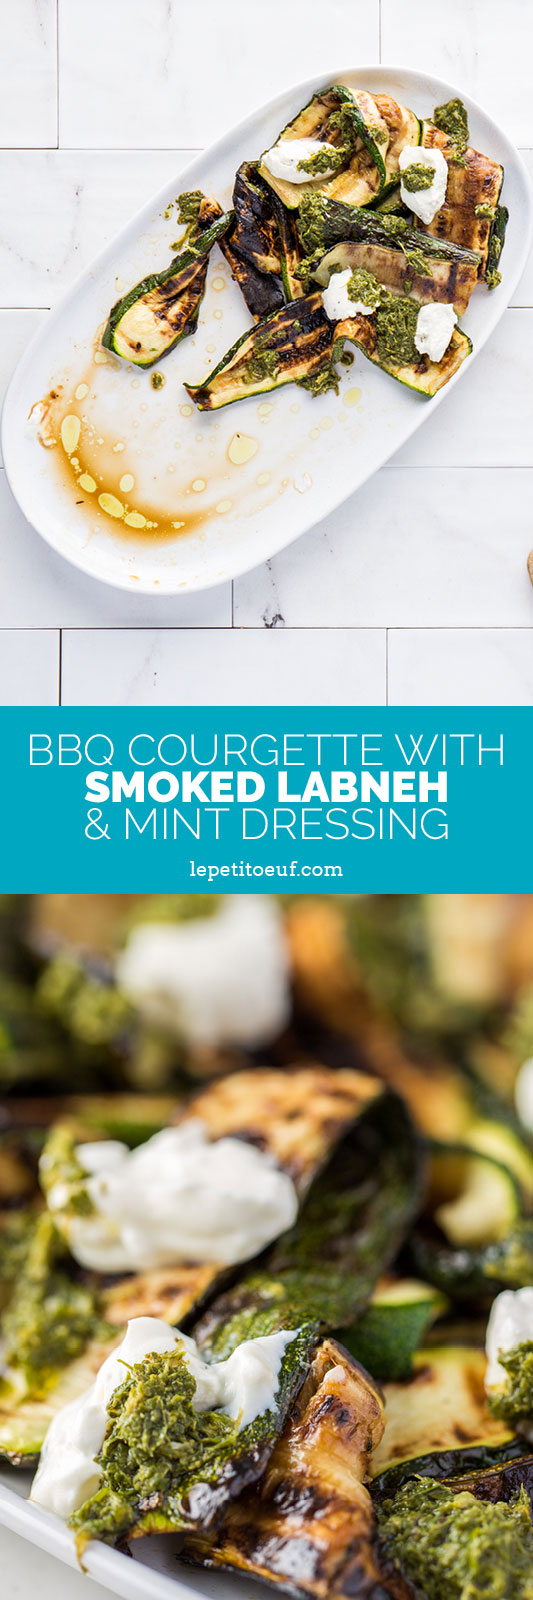 A bright and full flavoured summery vegetarian BBQ Courgette dish which uses full flavoured charred courgette slices topped with thick, creamy labneh and rich, tangy mint sauce. It's a dish to have both vegetarians and meat eaters drooling!